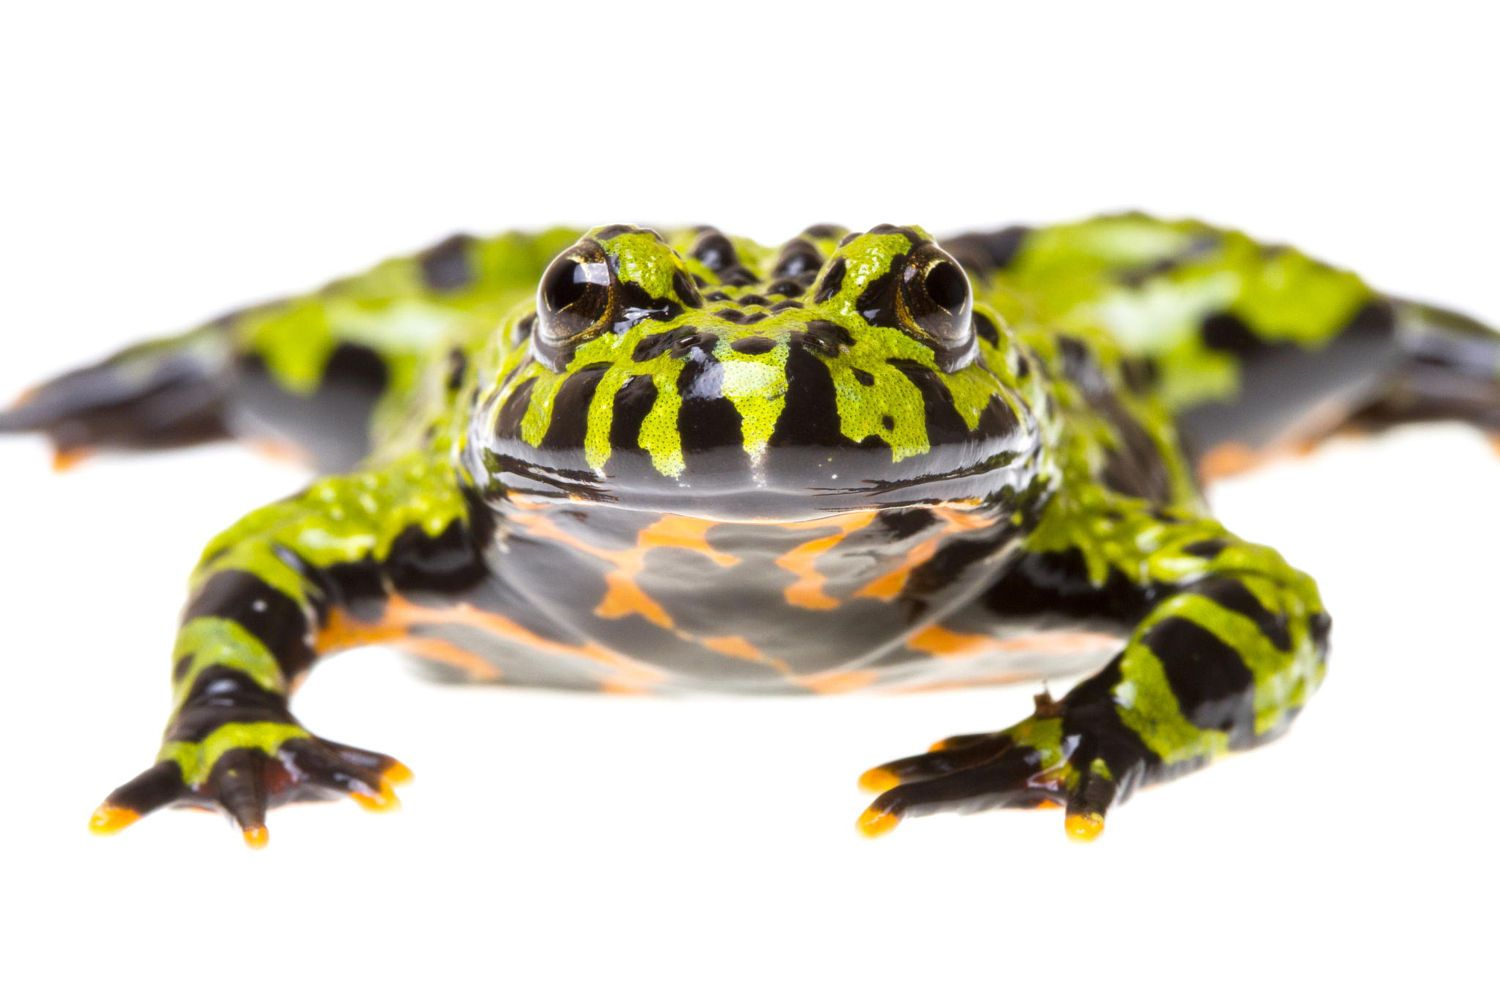 Fire Bellied Toad by Ryan Vince